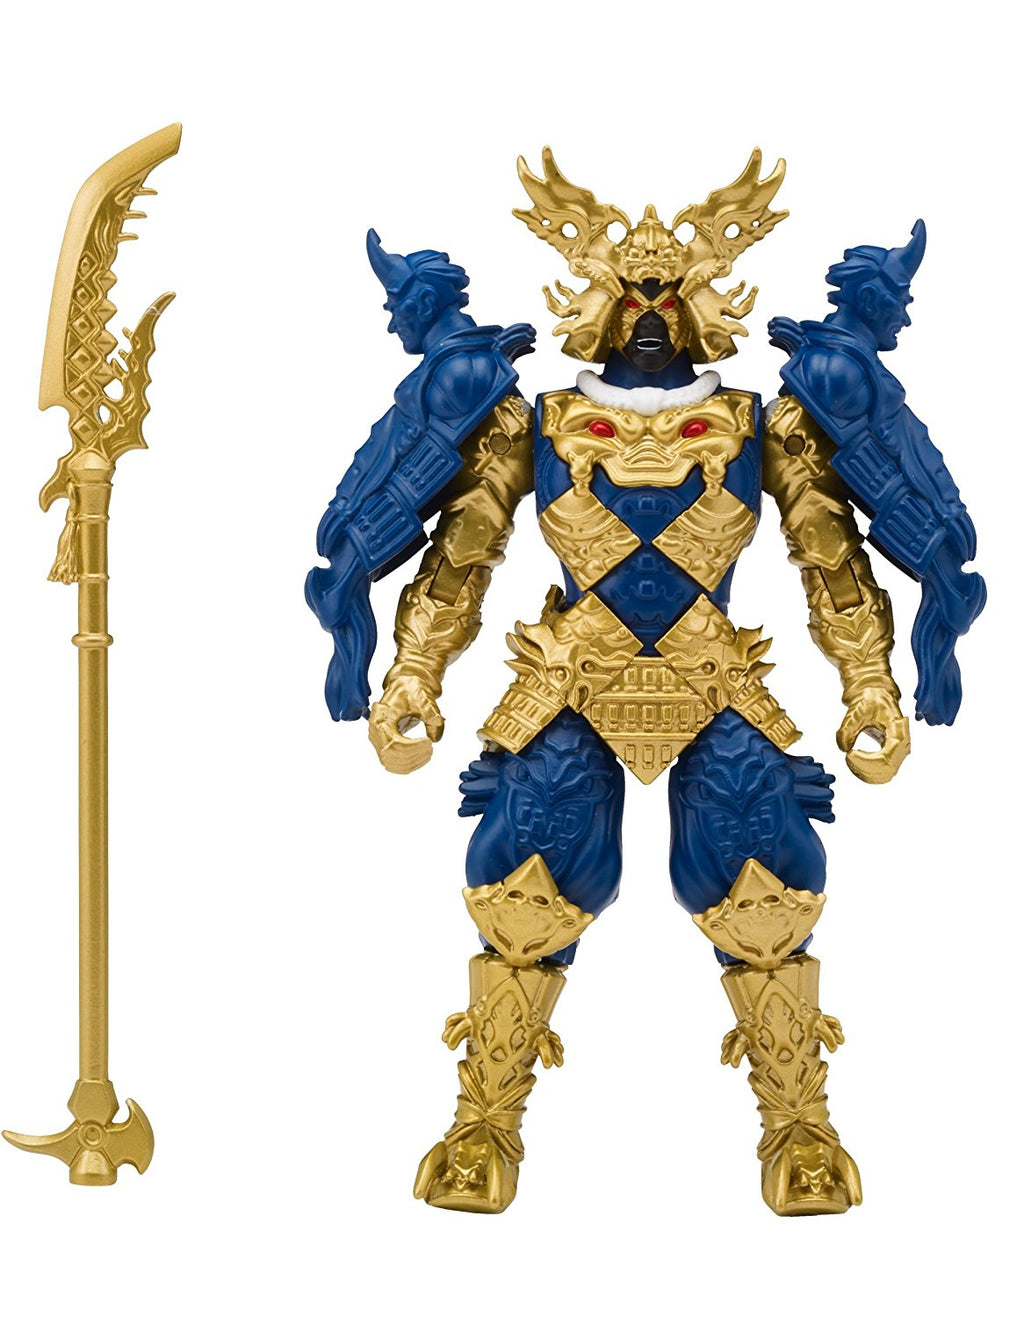 Power Rangers Super Ninja Steel Gengetsu Action Figure, Villain Galvanex - H-Town Toy Company